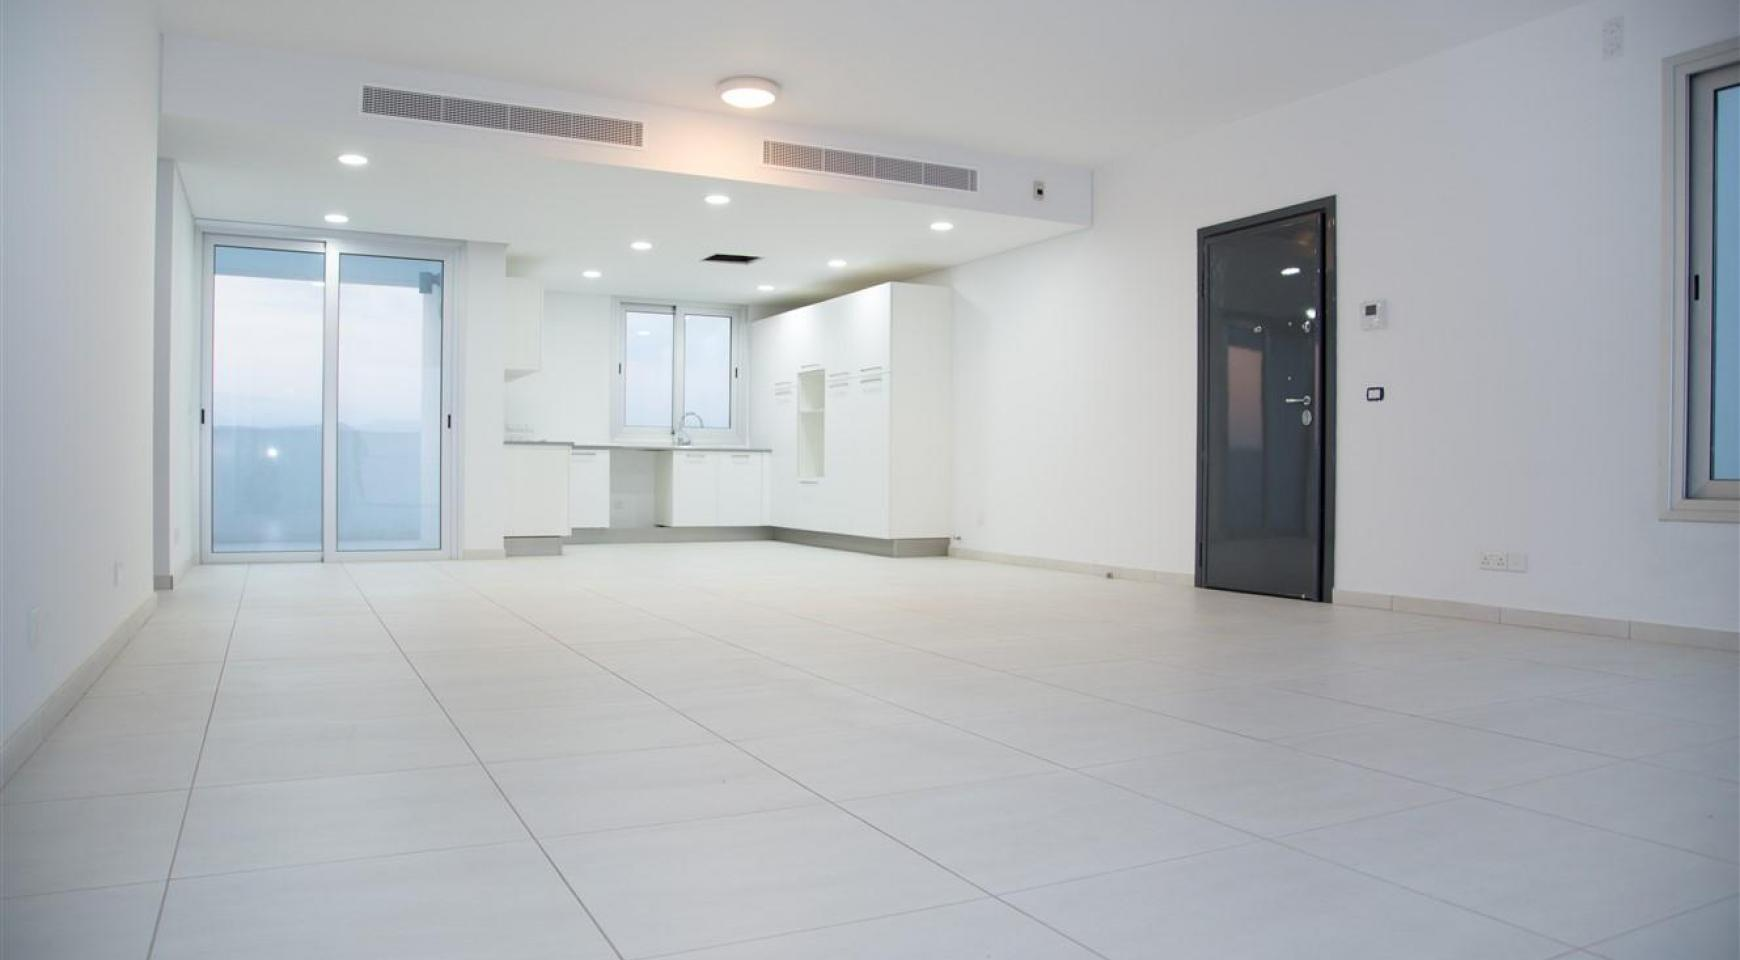 Elite 3 Bedroom Penthouse with private Swimming Pool on the Roof - 19